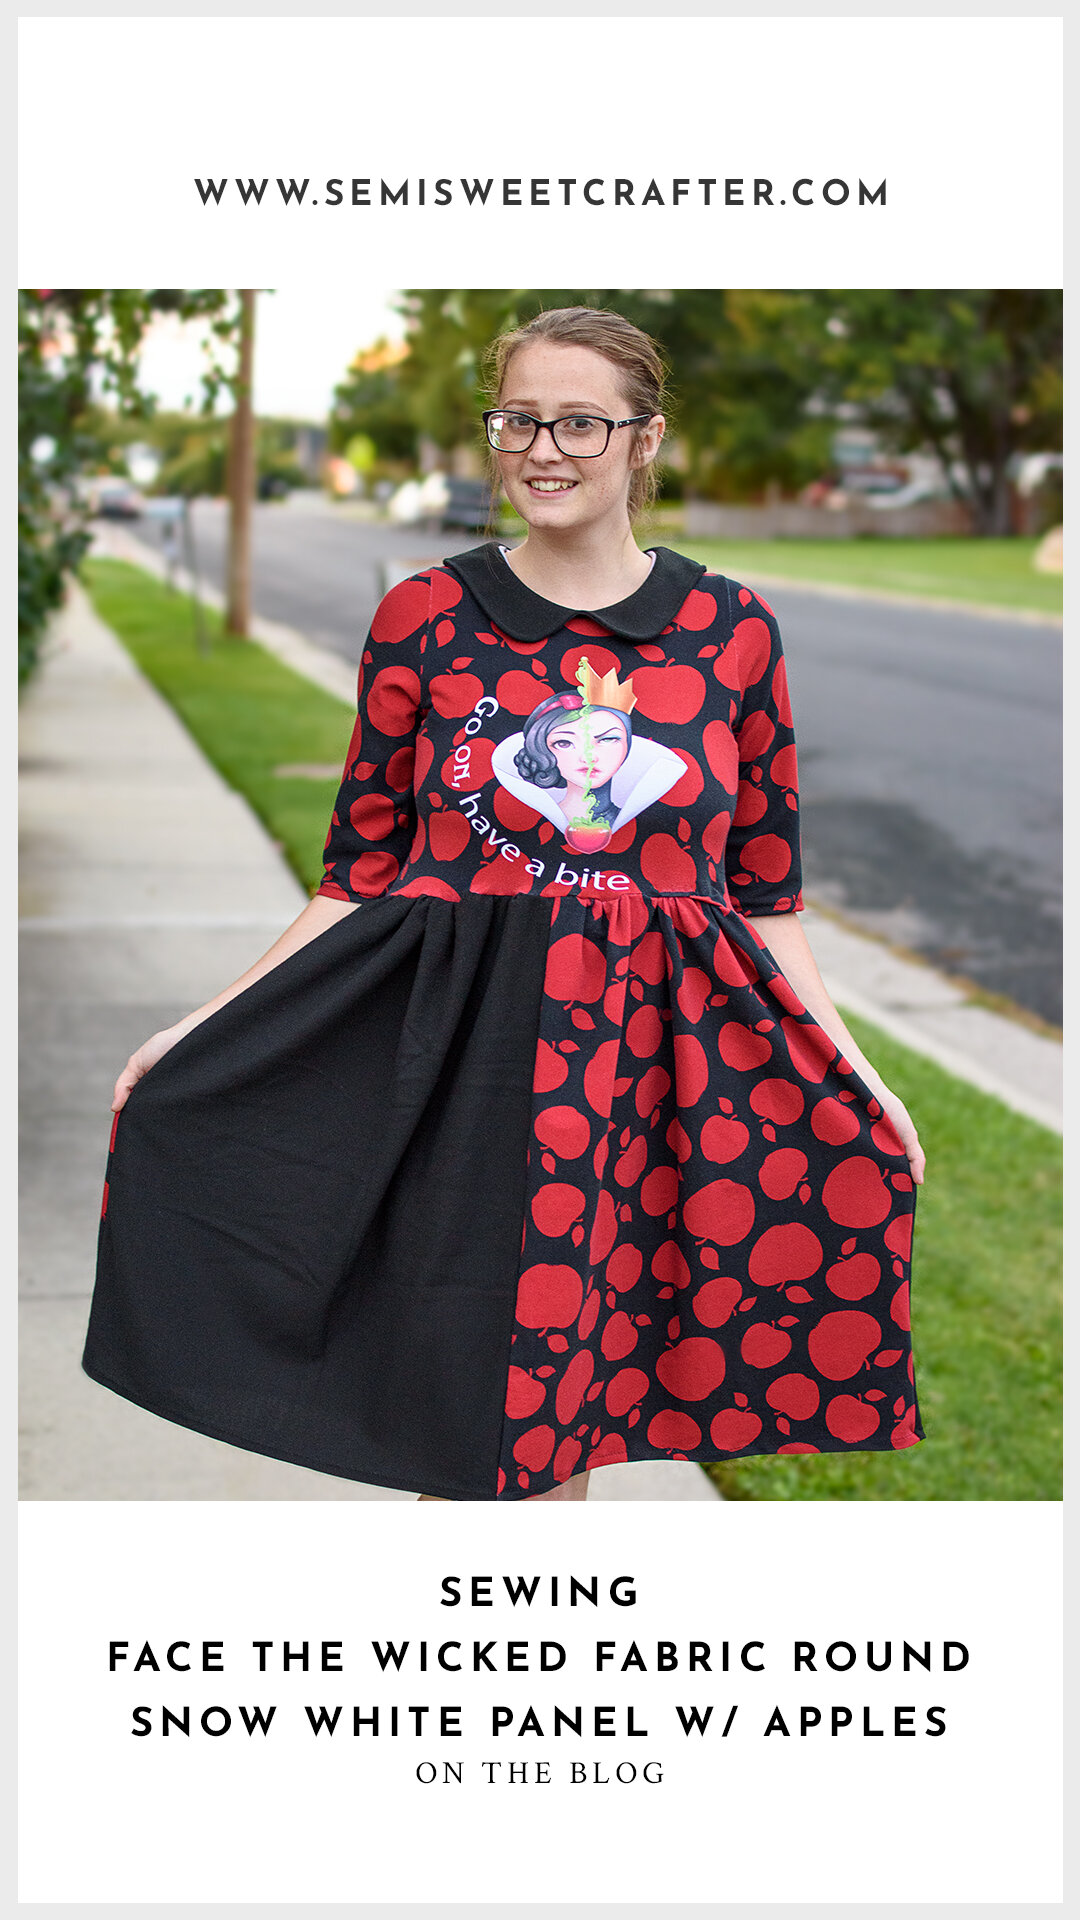 Snow White Dress Sewing Project by Semi Sweet Crafter, Brought To You By: Happy Cactus Fabrics